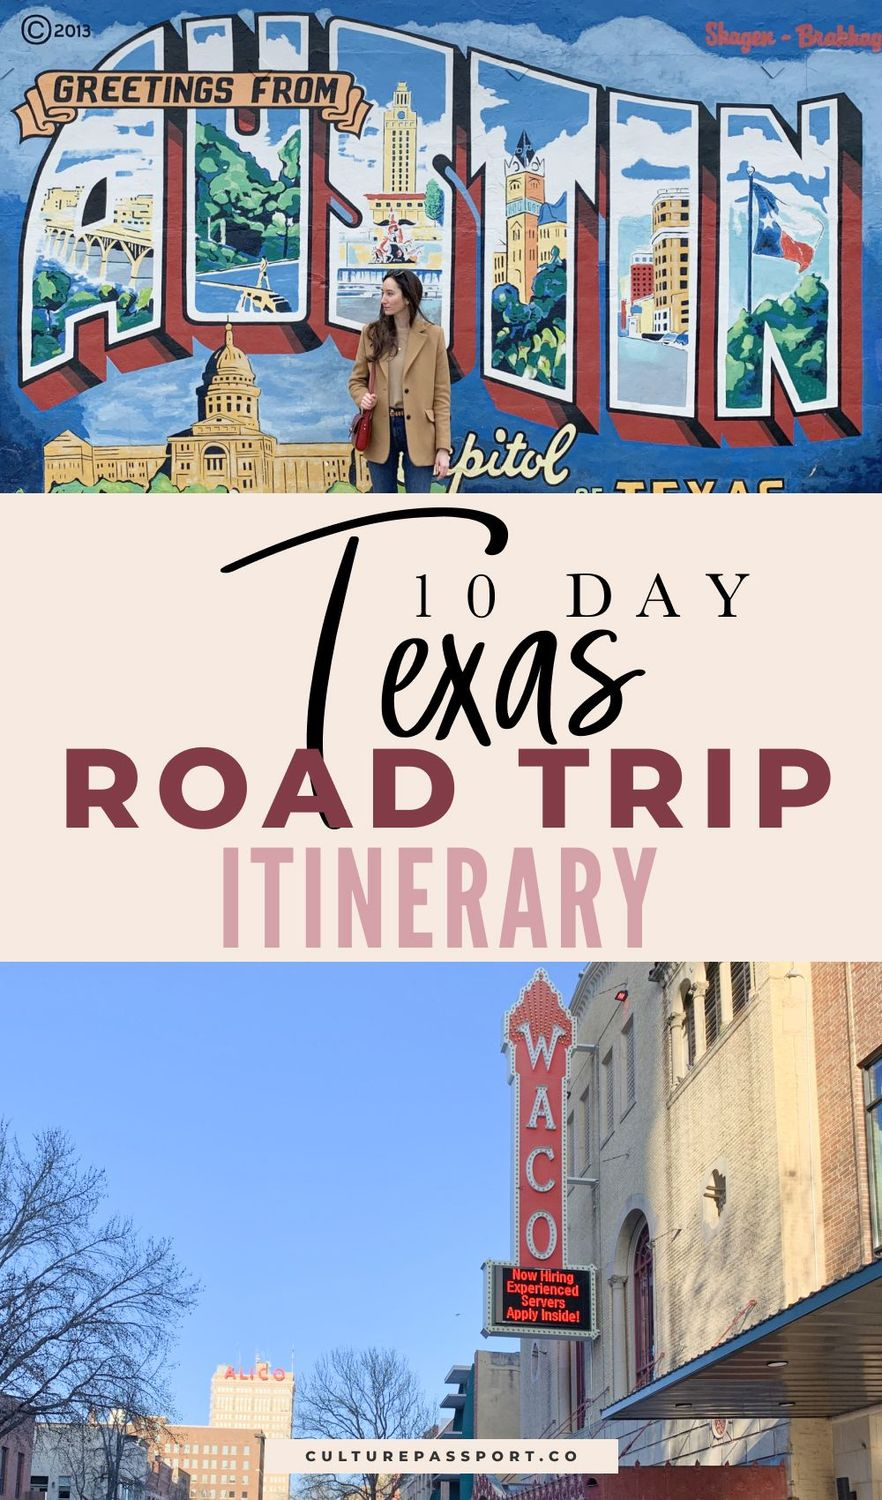 10-day Texas Road Trip Itinerary